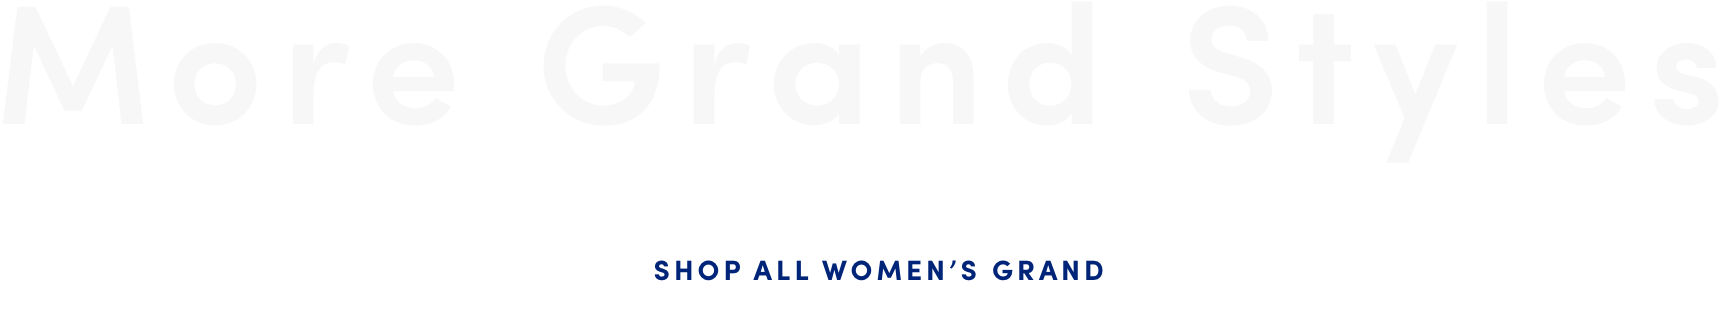 SHOP ALL WOMEN'S GRAND